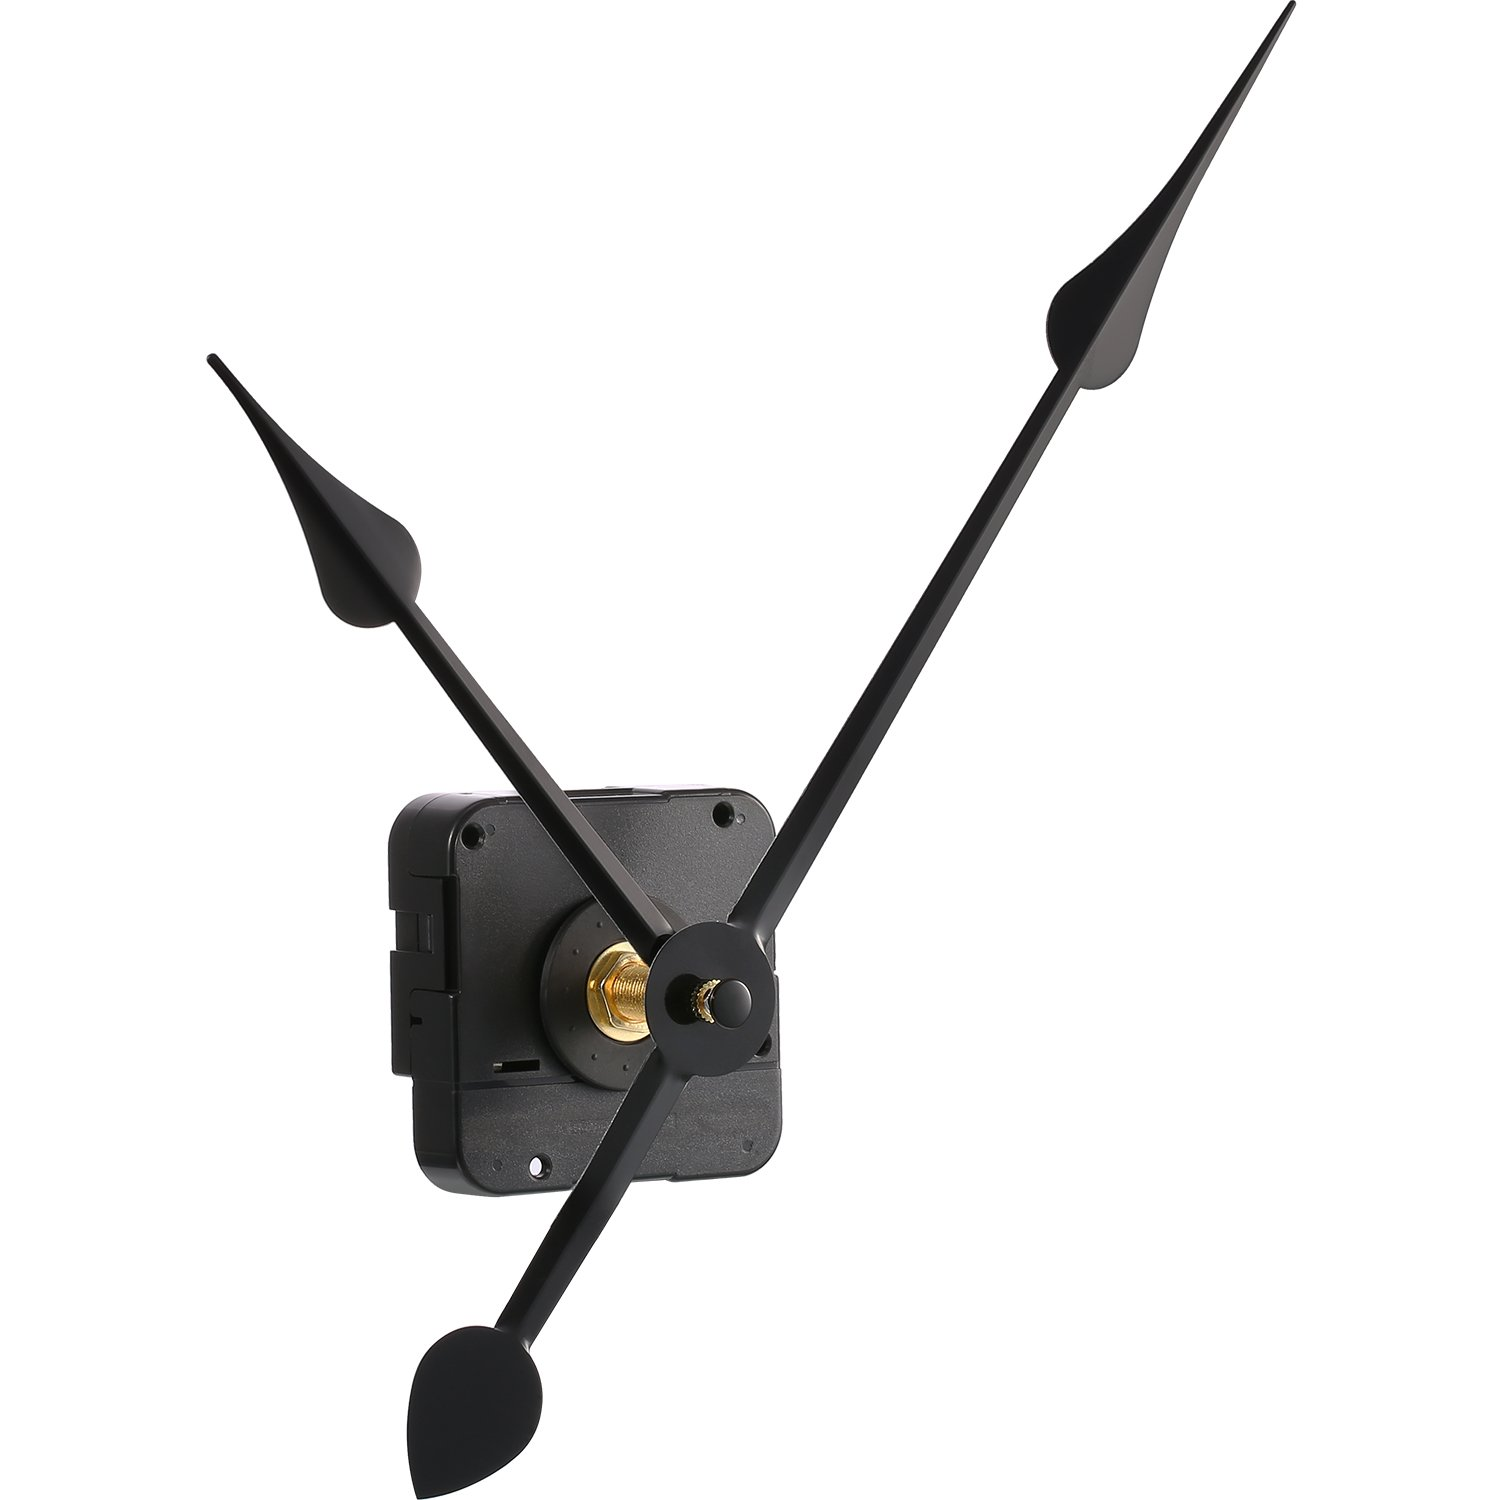 Hicarer High Torque Clock Movement Mechanism with 270 mm 10.6 Inch Big Clock Hands Shaft Length 9 10 Inch 23 mm